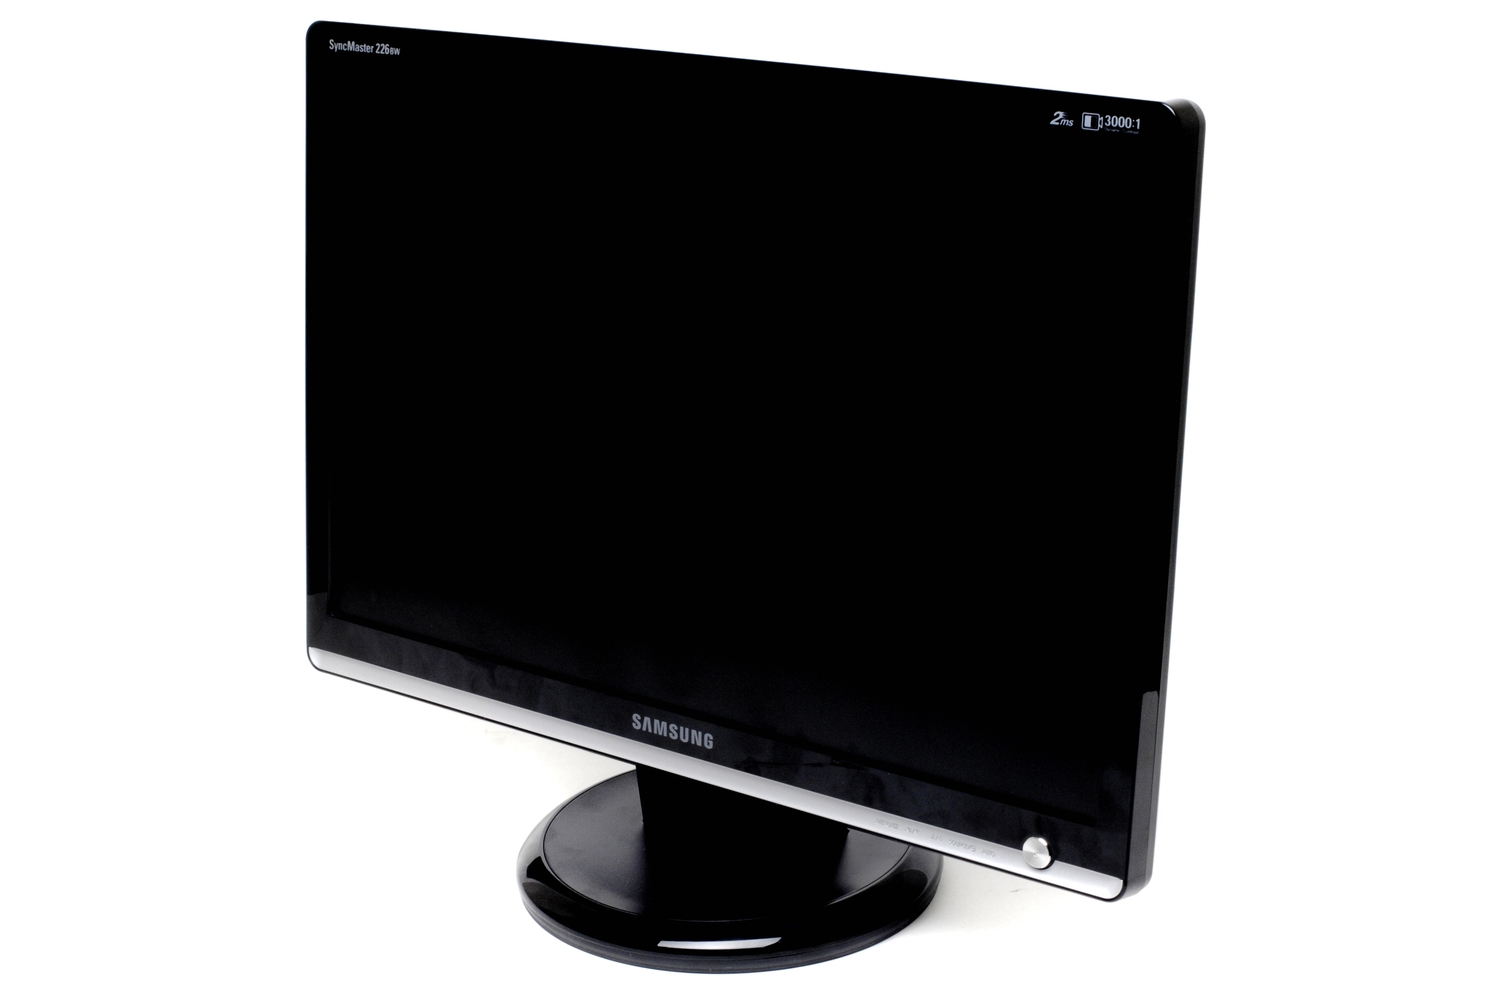 Samsung SyncMaster 226BW Review: - Monitors - LCD Monitors - PC World Australia